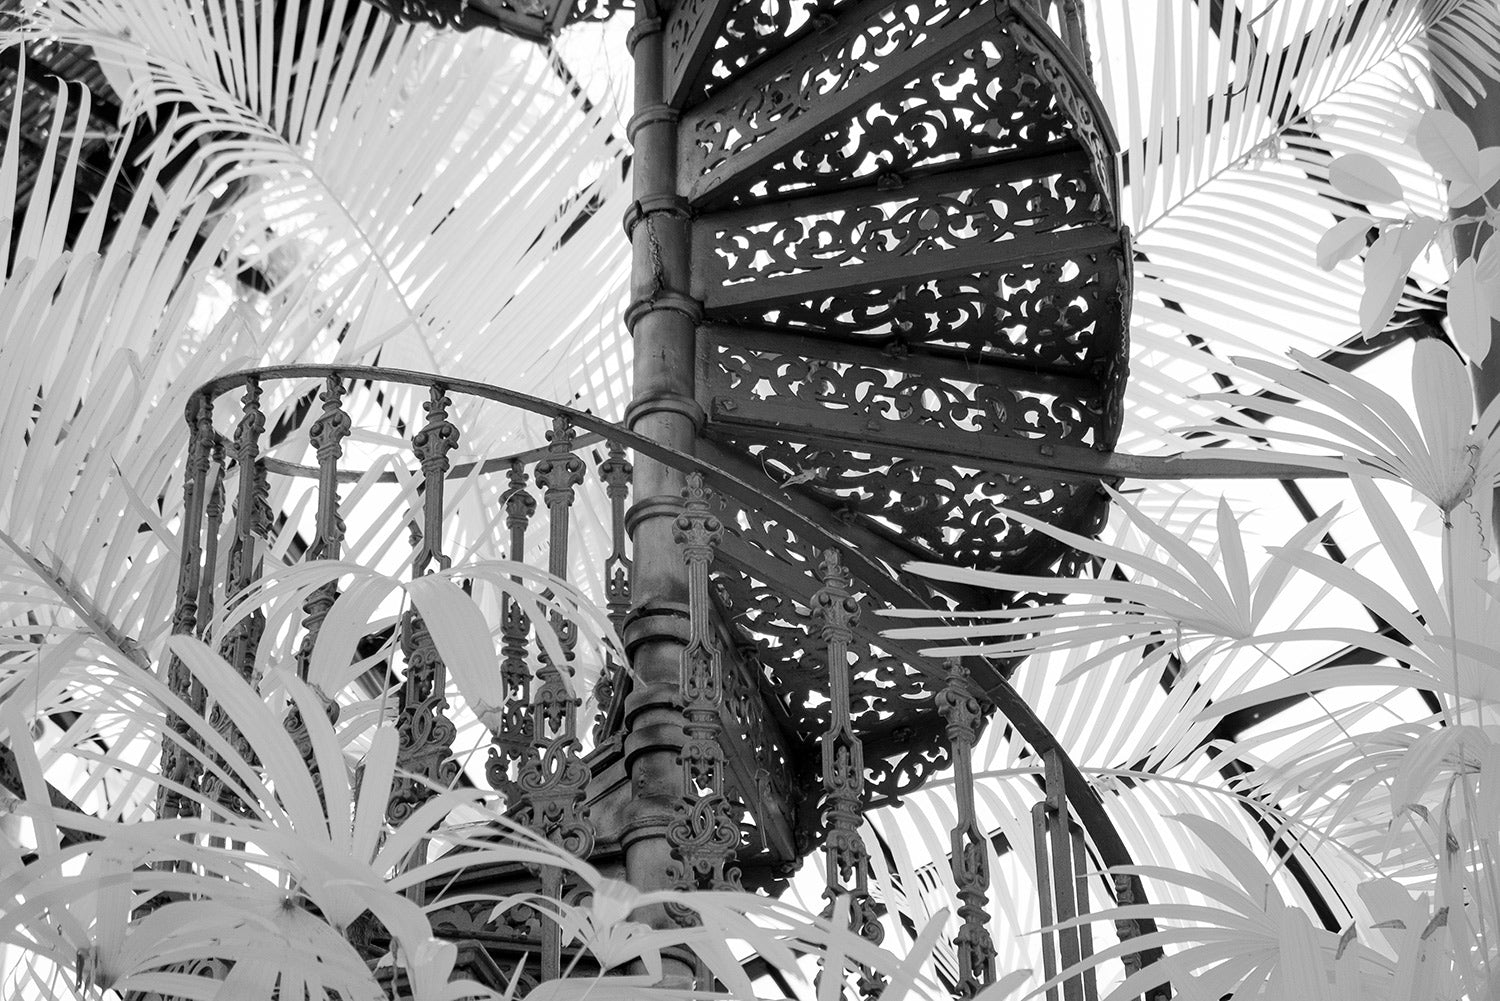 an infrared photograph of a Victorian spiral staircase situated in the Botanical gardens in Glasgow surrounded by fronds.